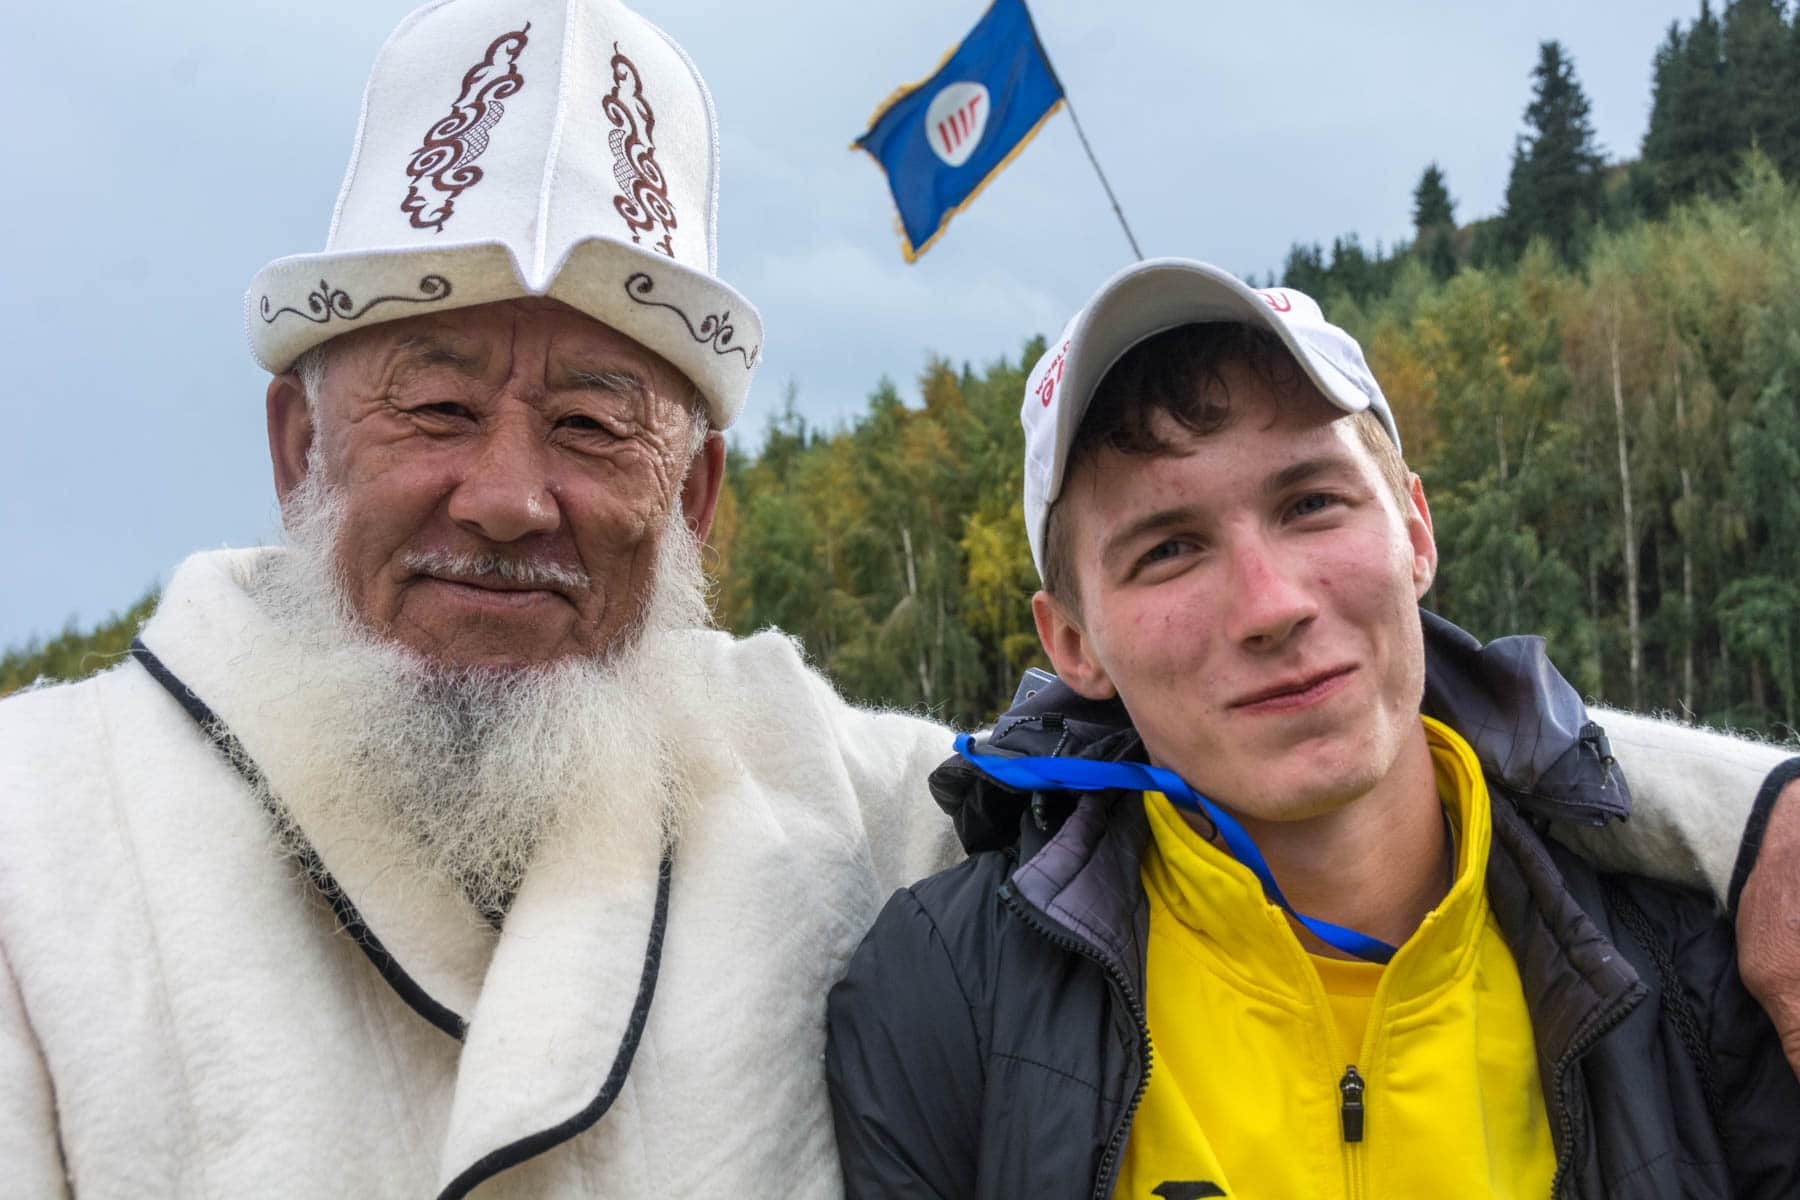 A volunteerand a Kyrgyz spectator at the 2016 World Nomad Games